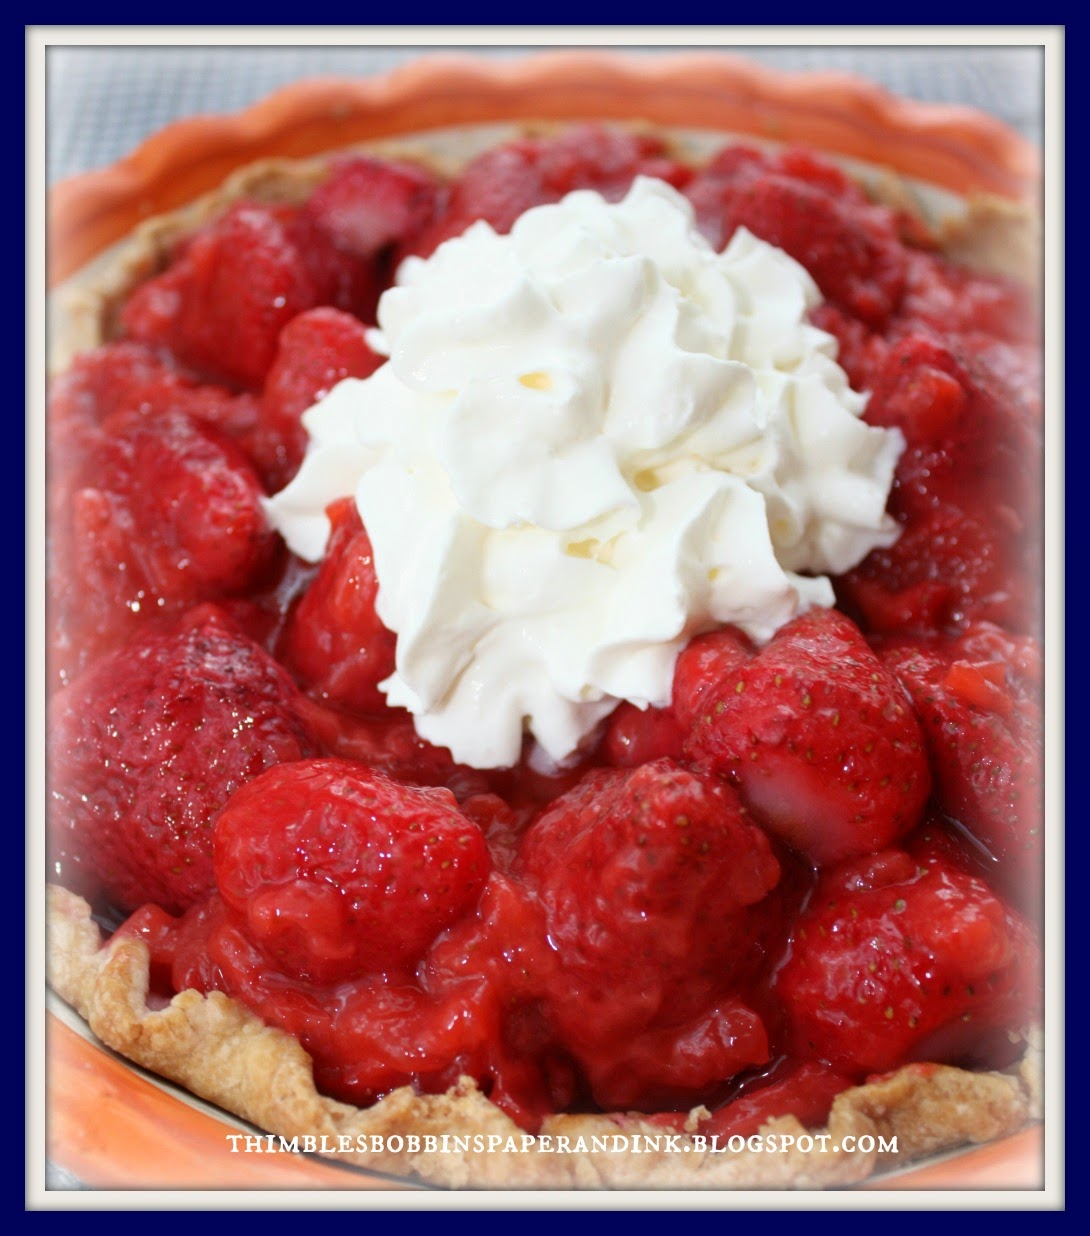 Thimbles, Bobbins, Paper And Ink: Fresh Strawberry Pie